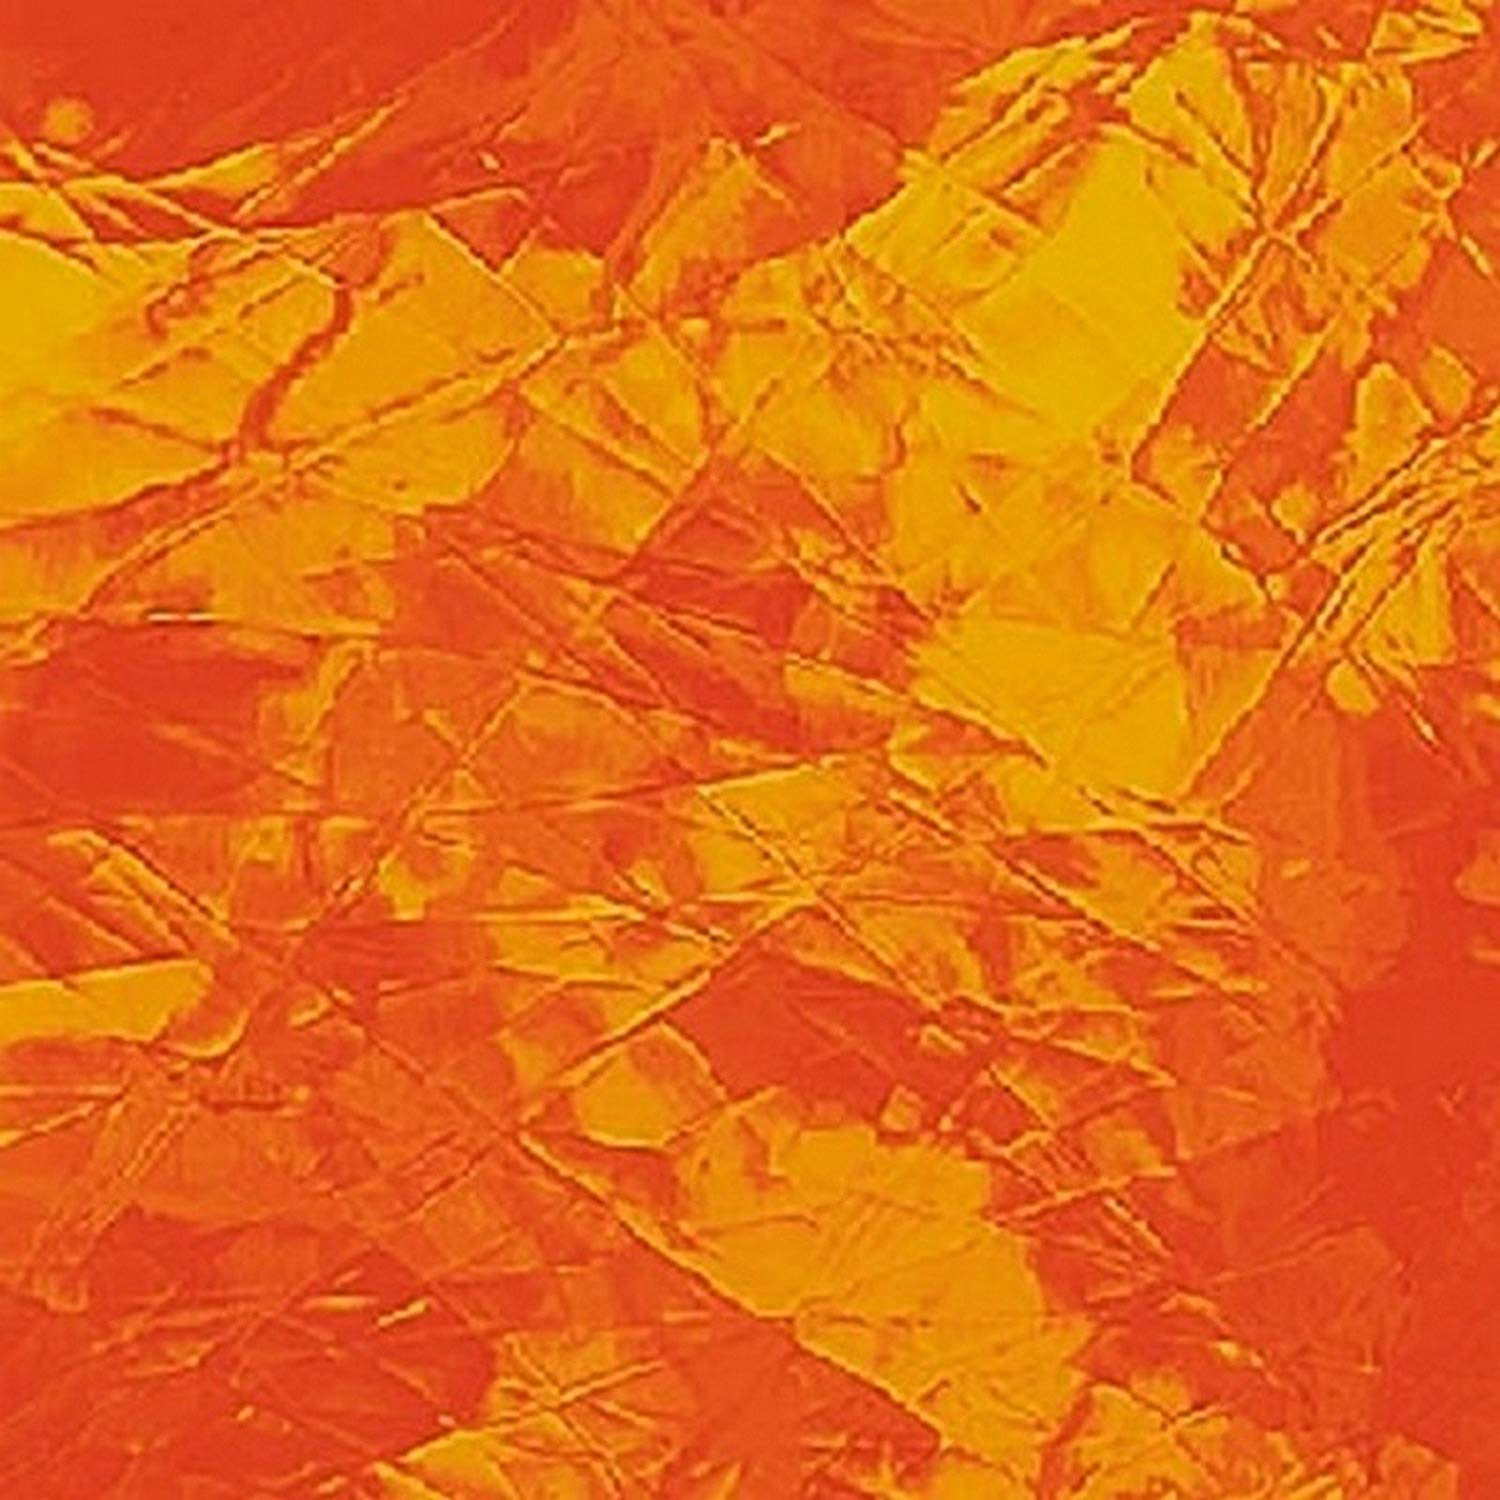 Spectrum Amber Stained Glass Sheet By Stallings Stained Glass 8 X 12 .67sf